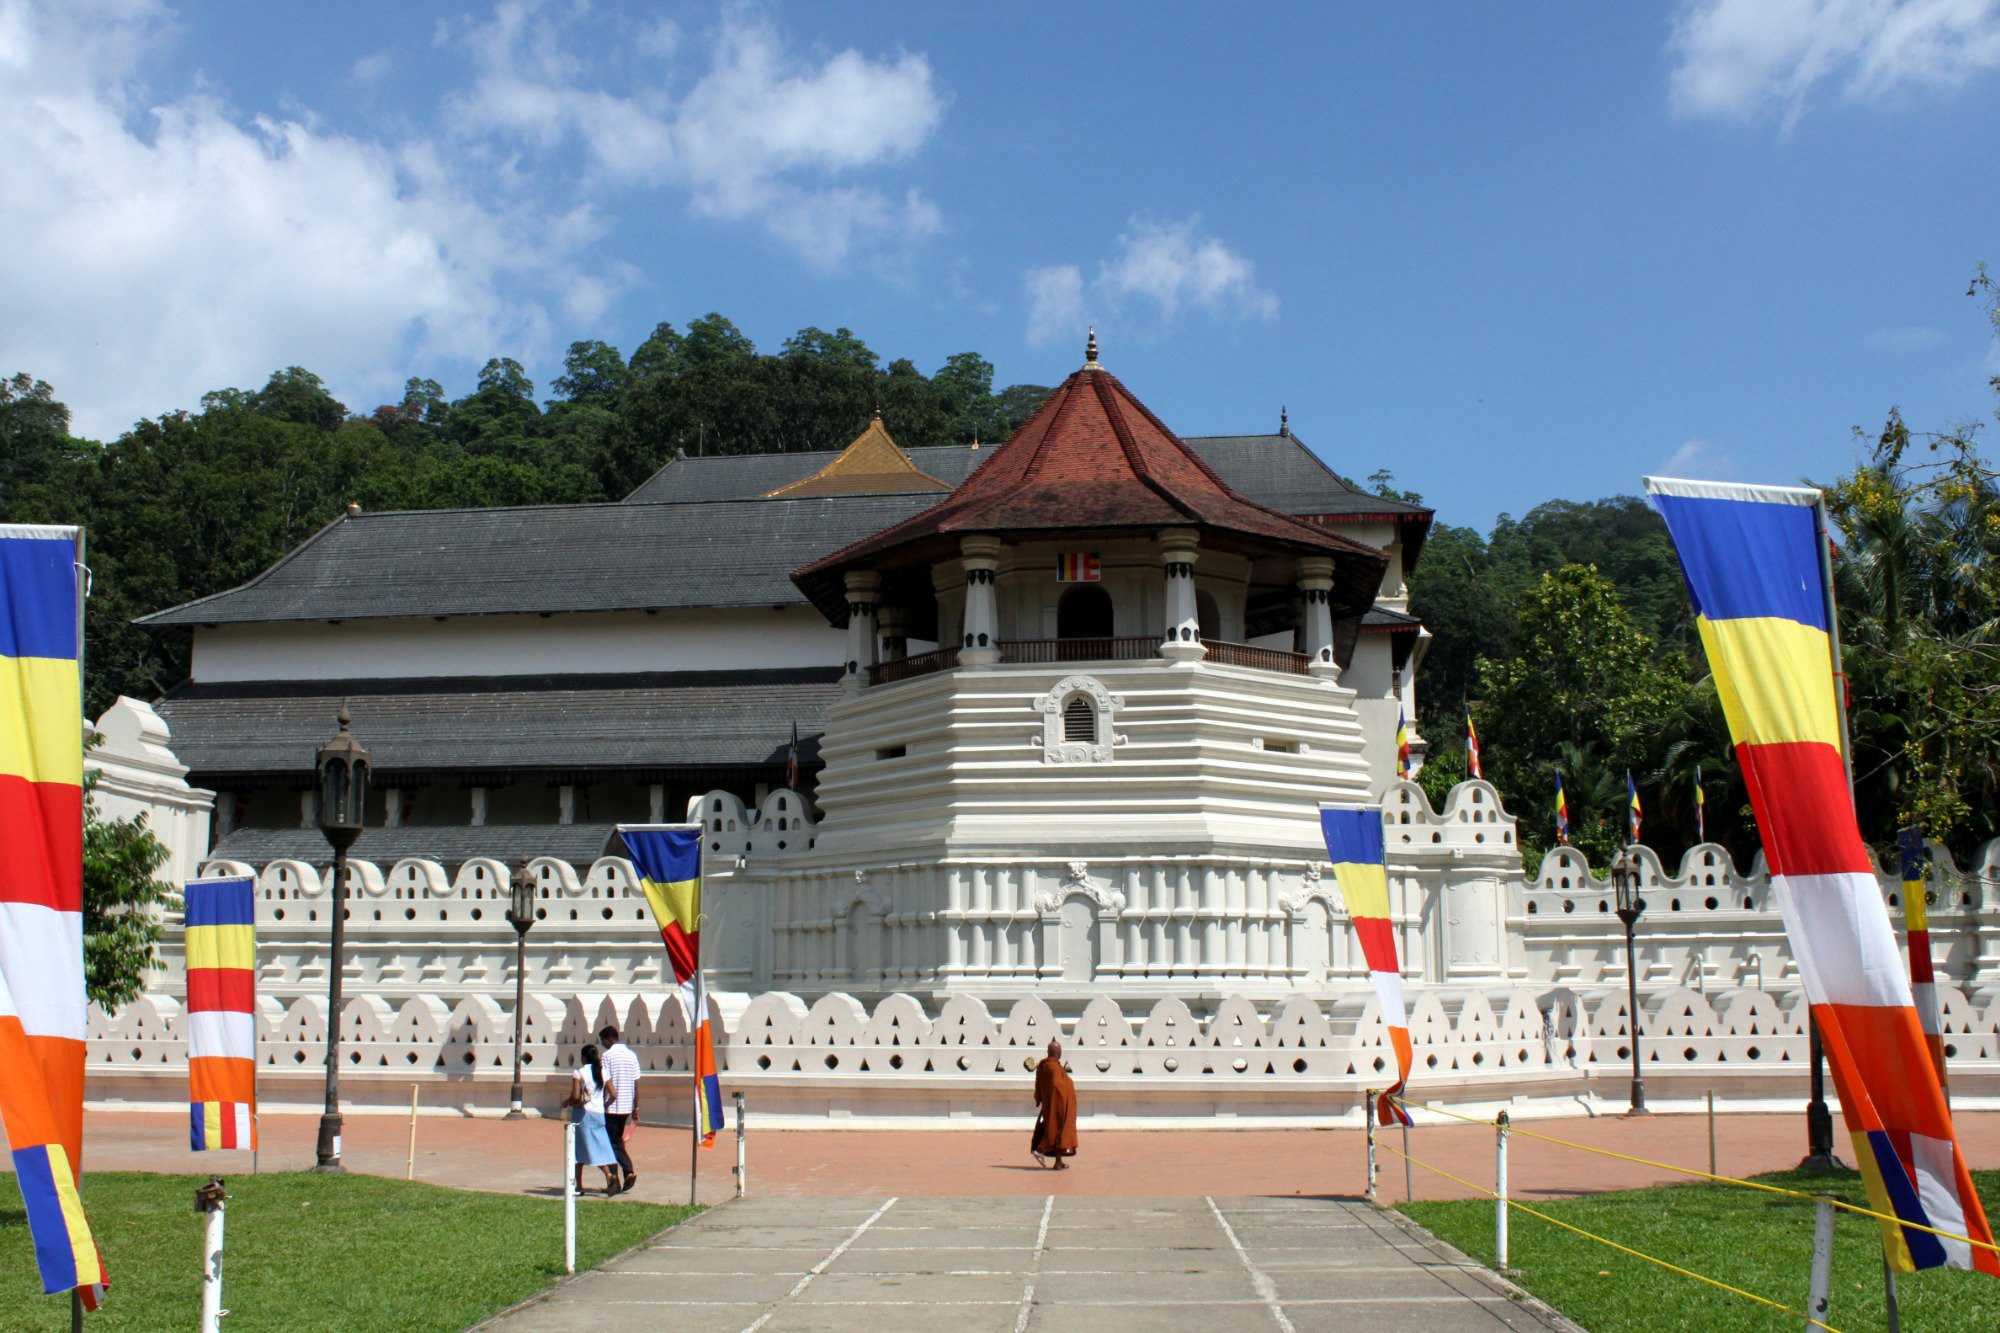 Temple of the Sacred Tooth Relic, Kandy - TripAdvisor